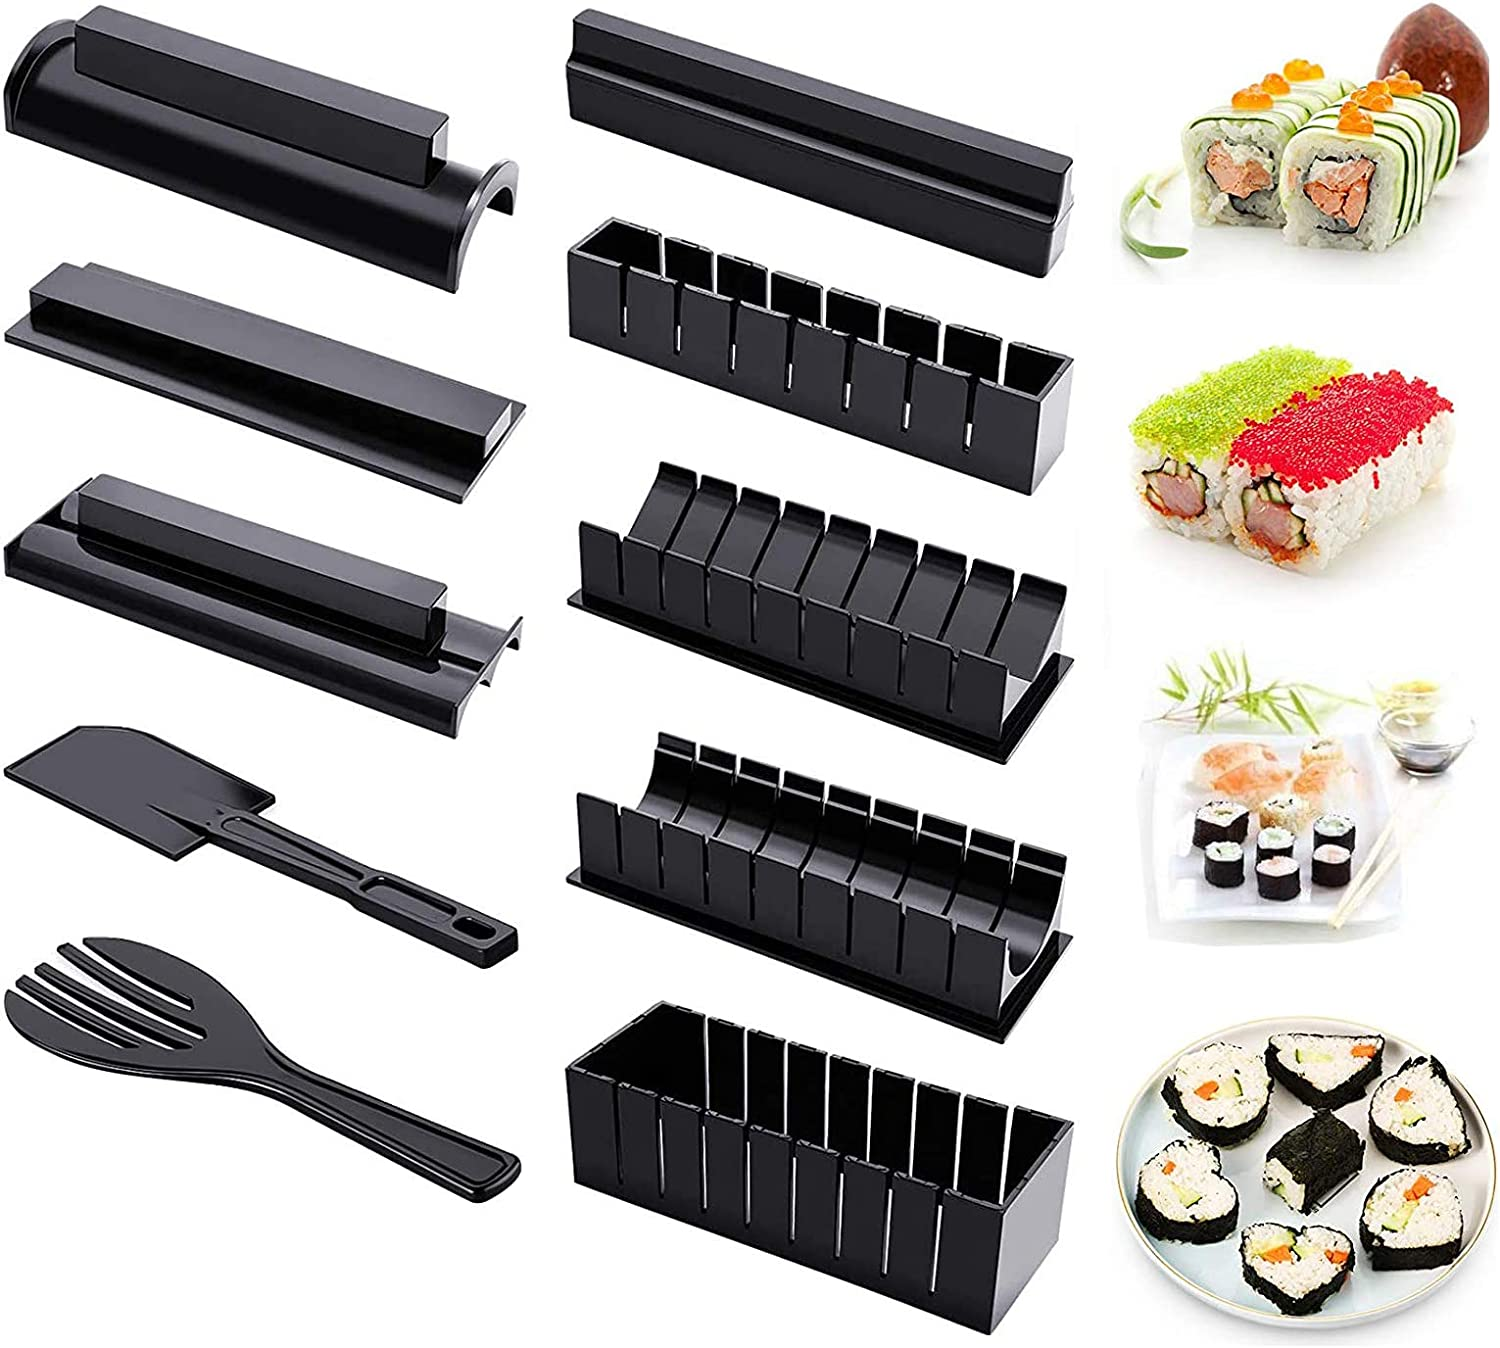 Sushi Making Kit, 10 Pieces DIY Plastic Sushi Maker Tool Set Complete with 8 Sushi Rice Roll Mold Shapes and 2 Fork, Home Kitchen Sushi Tool for Beginners, Black